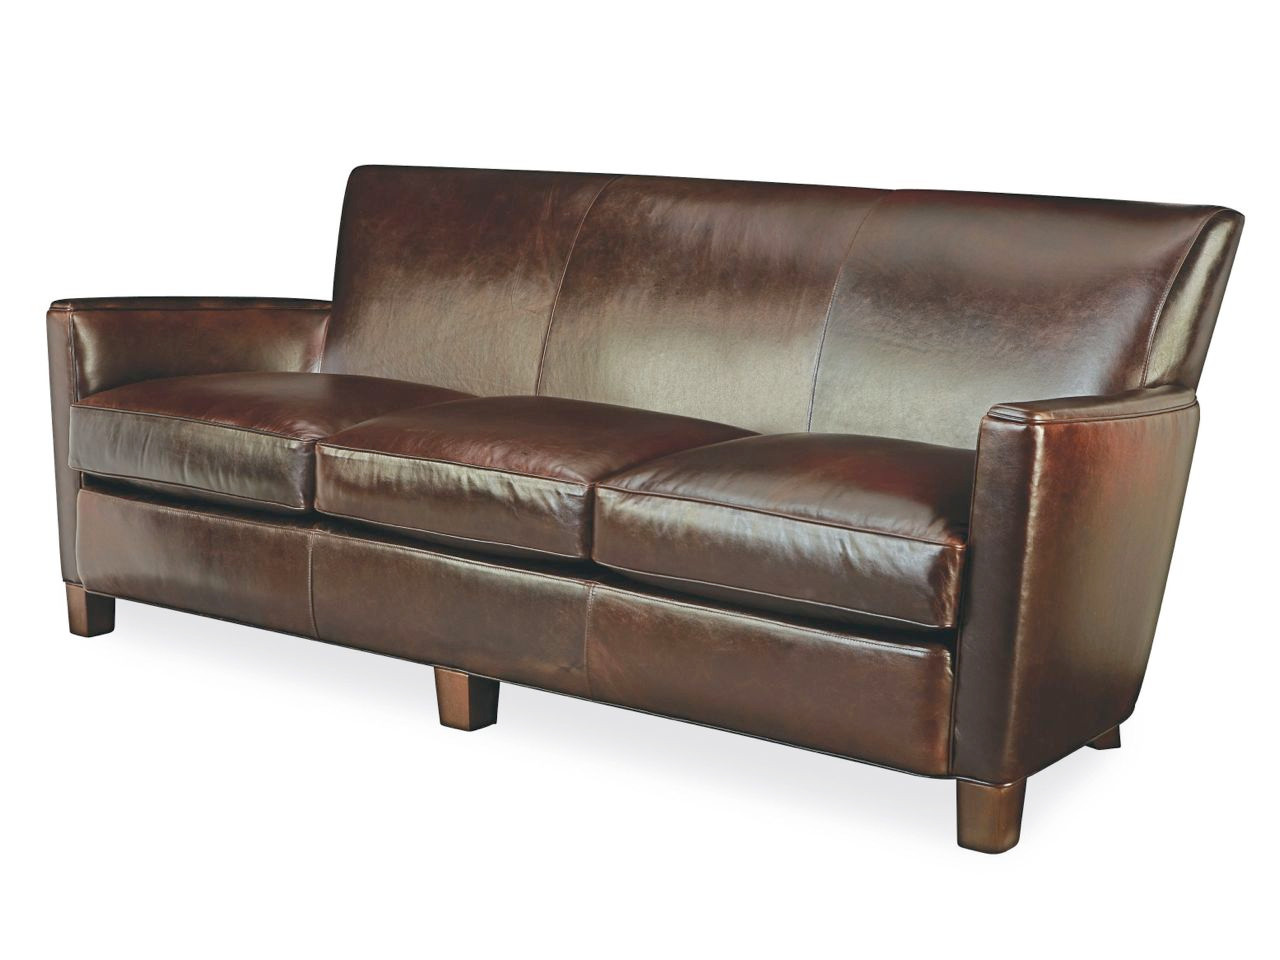 Leather Sofa Dimensions Mindonmath